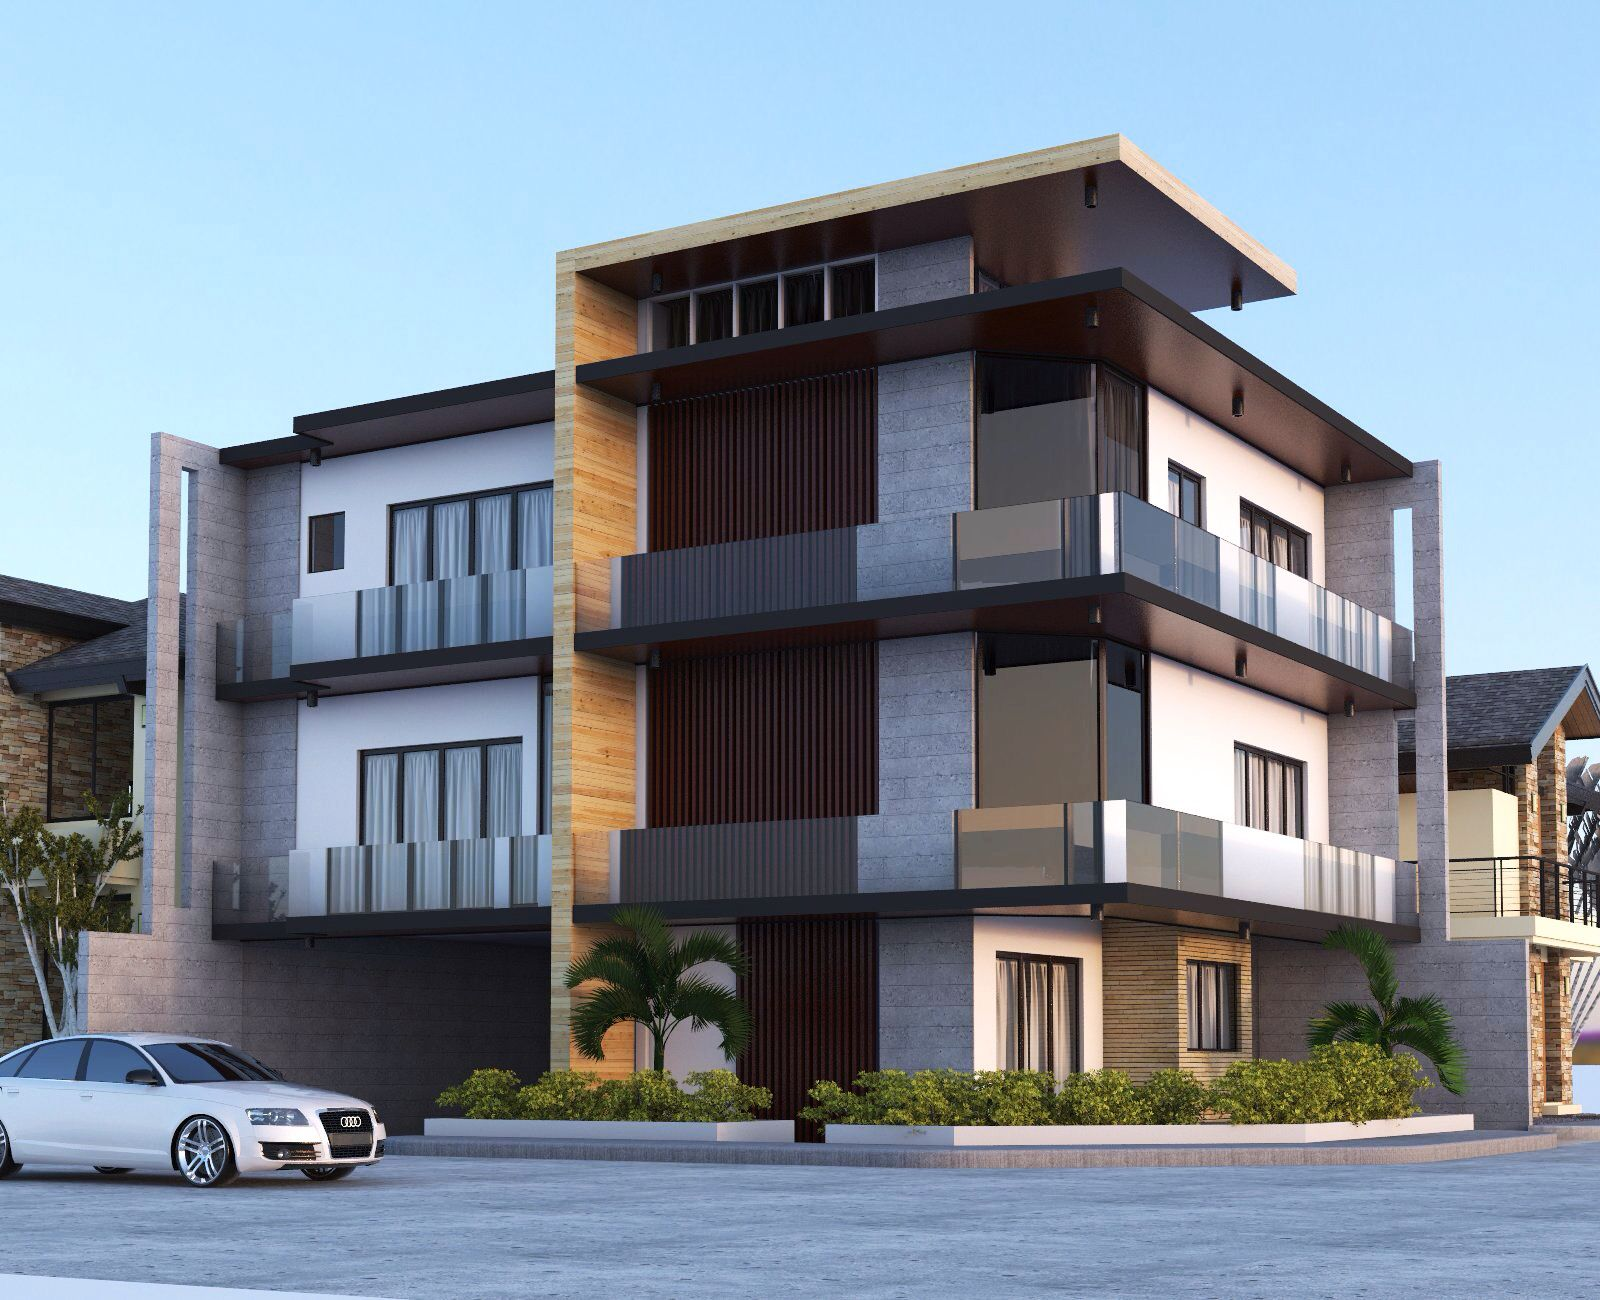 3 stories residential building